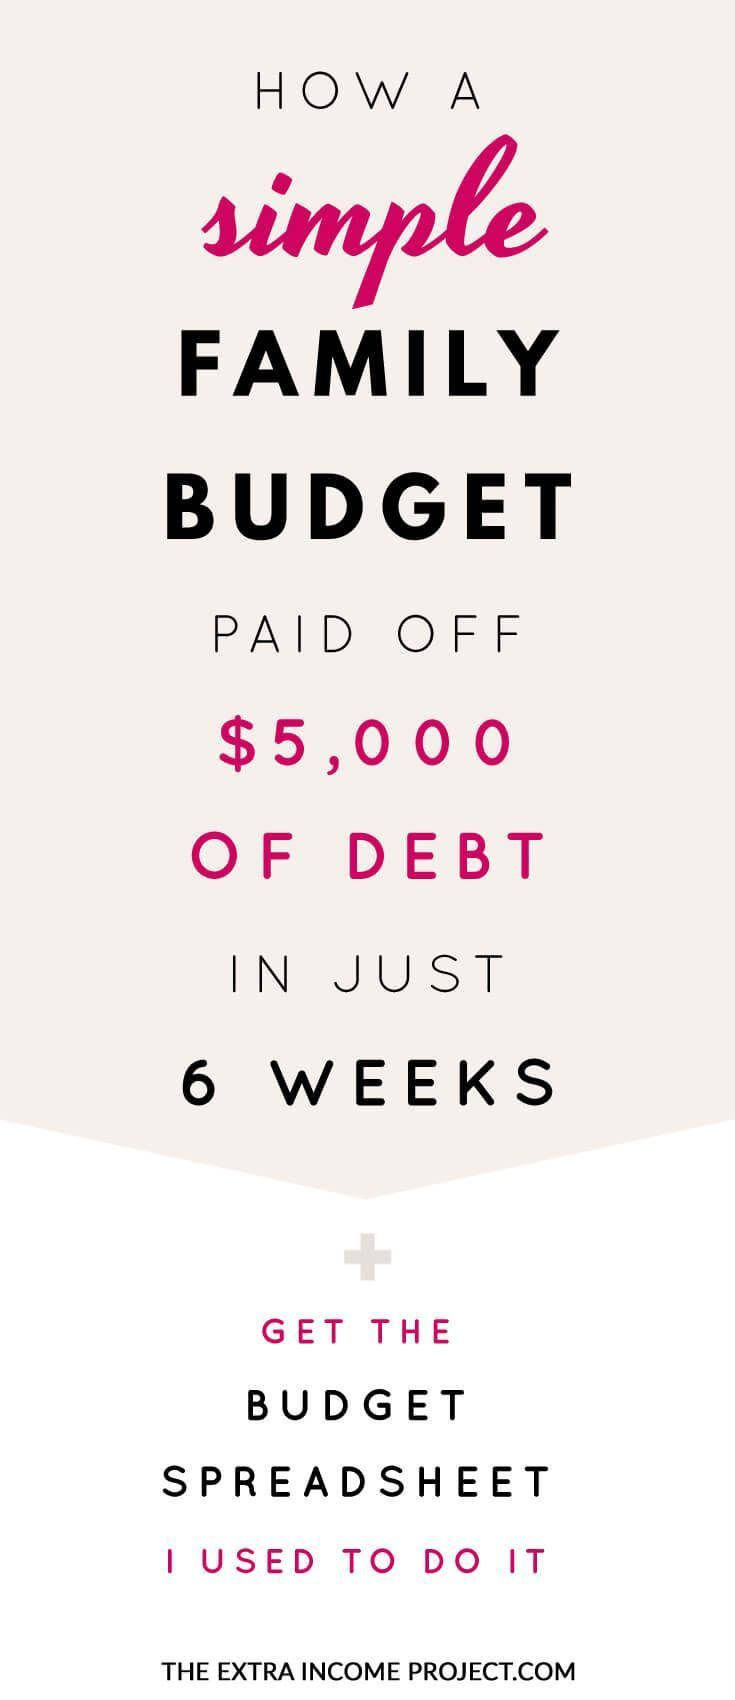 How a Simple Family Budget helped pay off $5000 of debt in just 6 weeks. If you're looking to pay off debt quickly these budgeting tips will help you start a budget and learn the power of a budget. Pay off credit card debt or pay off student loans fast!     Plus a BONUS - download the FREE budget planner template spreadsheet that helped me achieve my awesome goal to get your started.